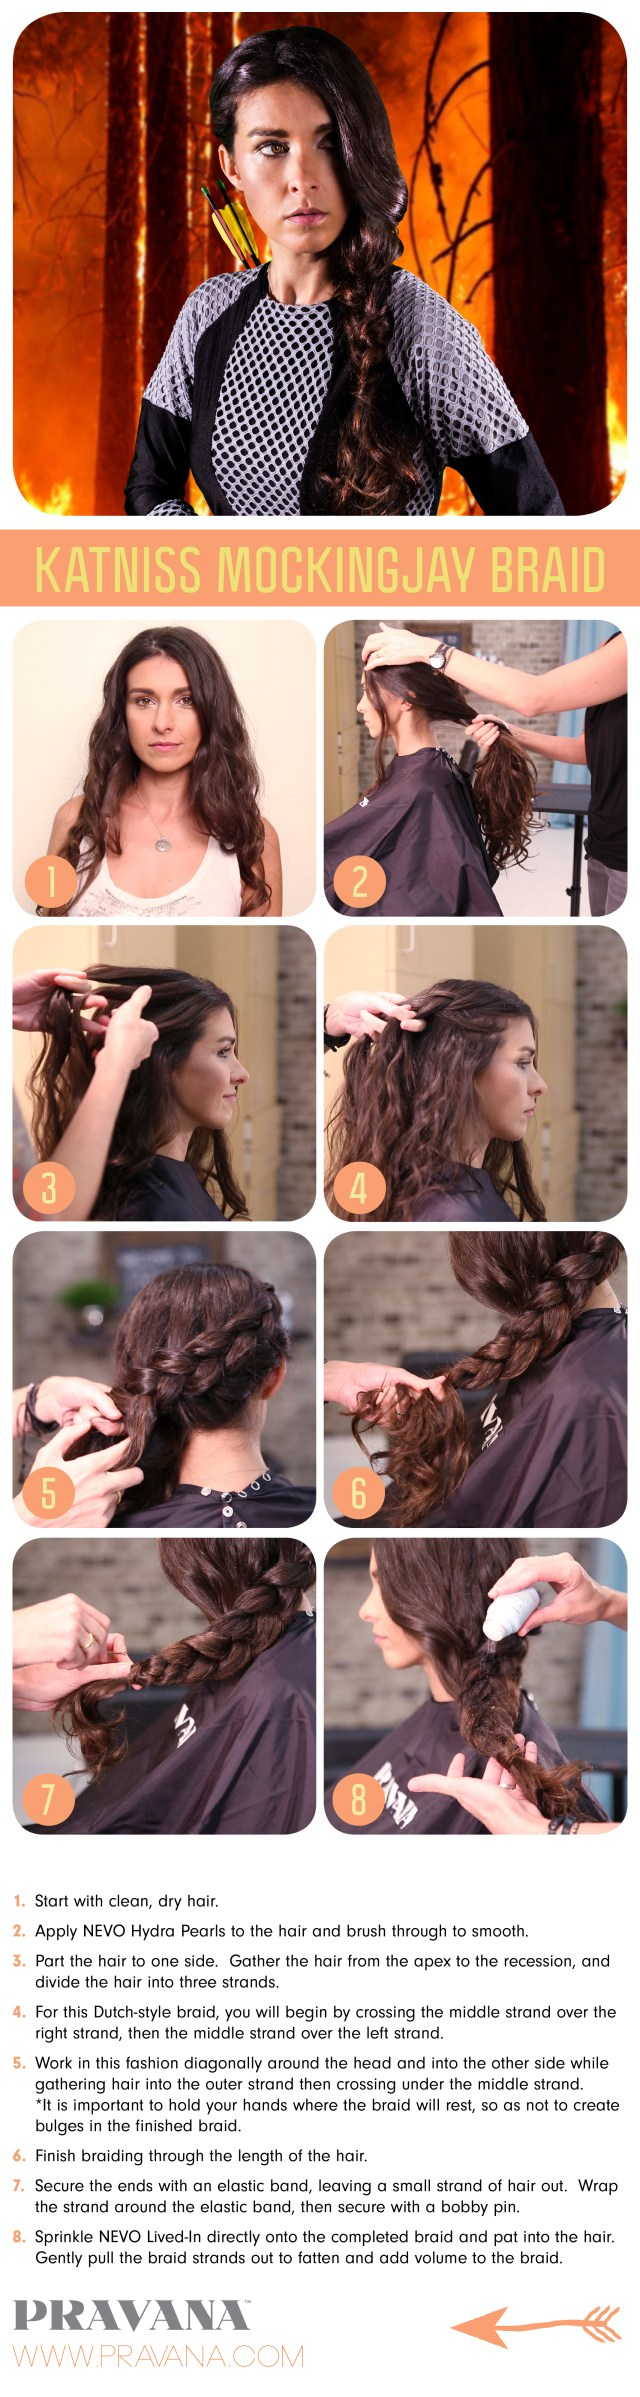 halloween how-to: katniss everdeen's mockingjay braid - aol